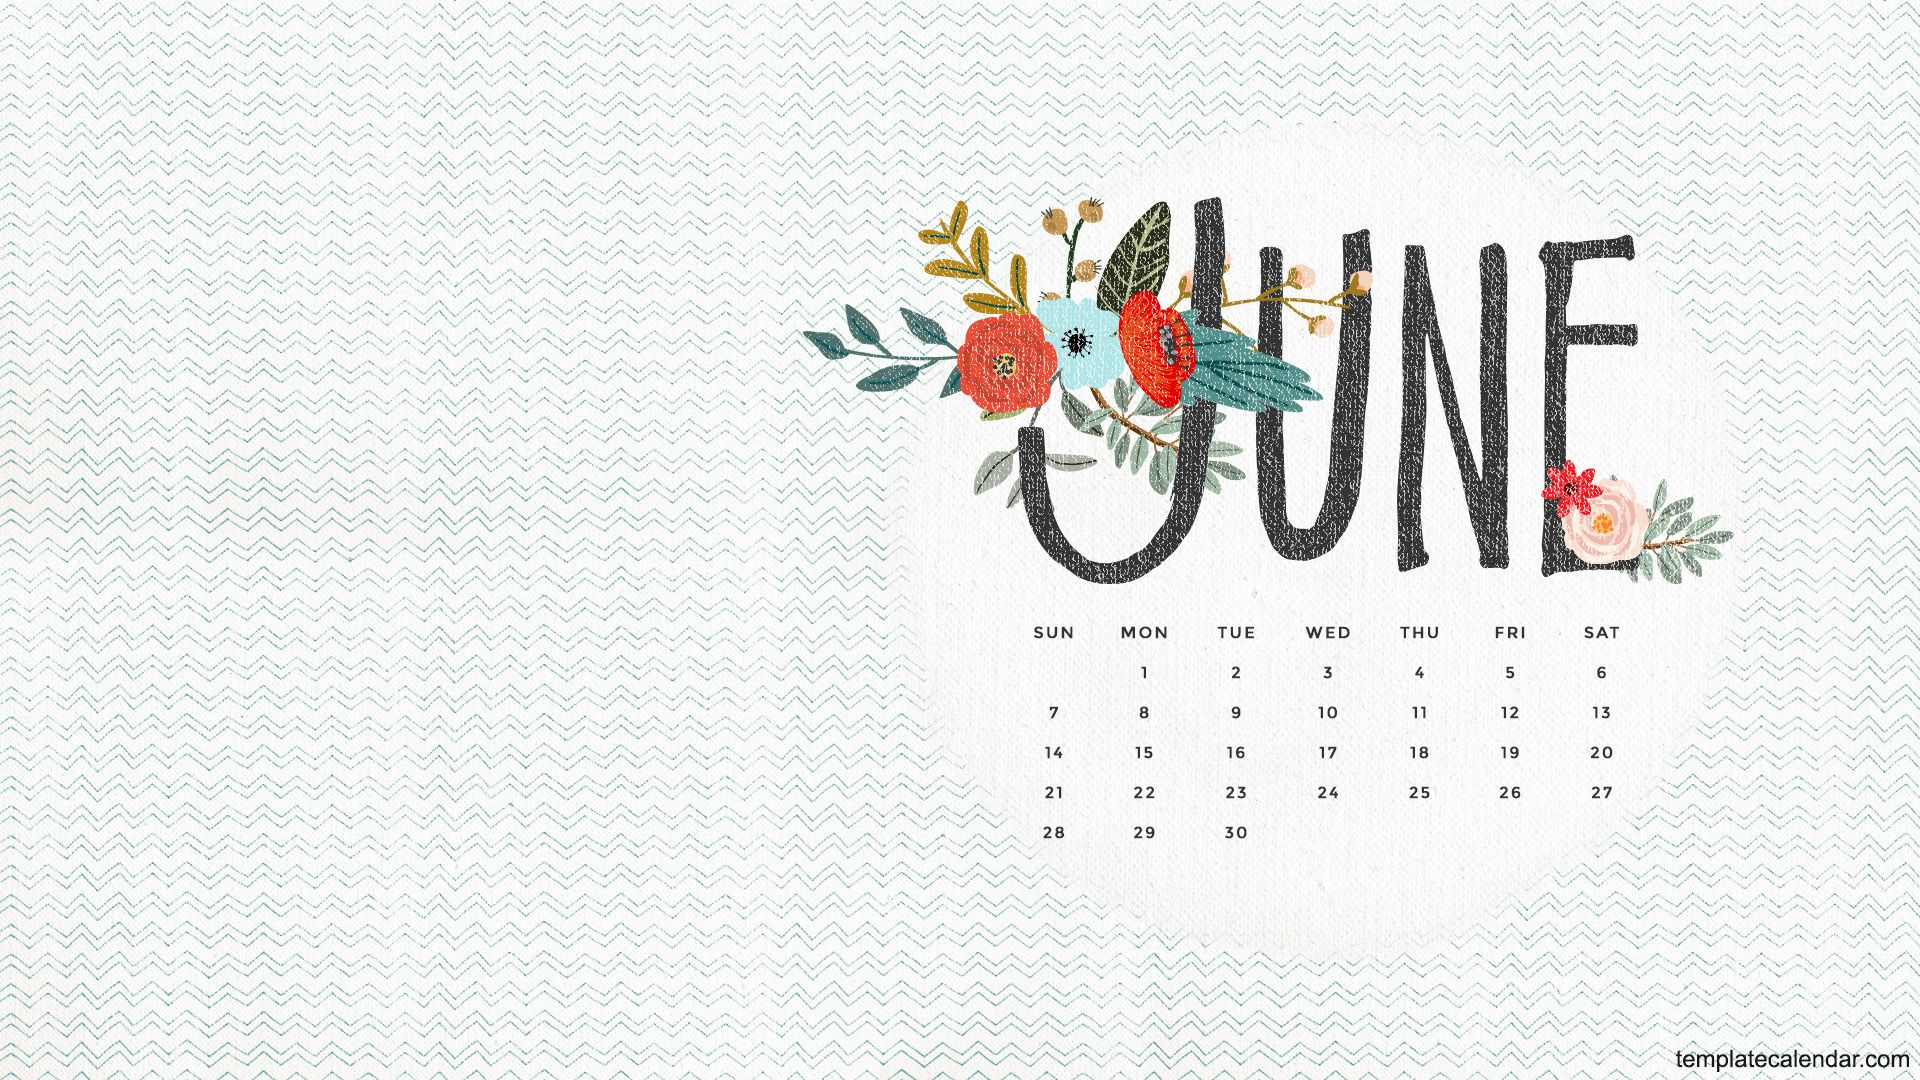 may 2015 by to live beautifully calendar wallpaper pinterest calendar wallpaper card ideas and patterns